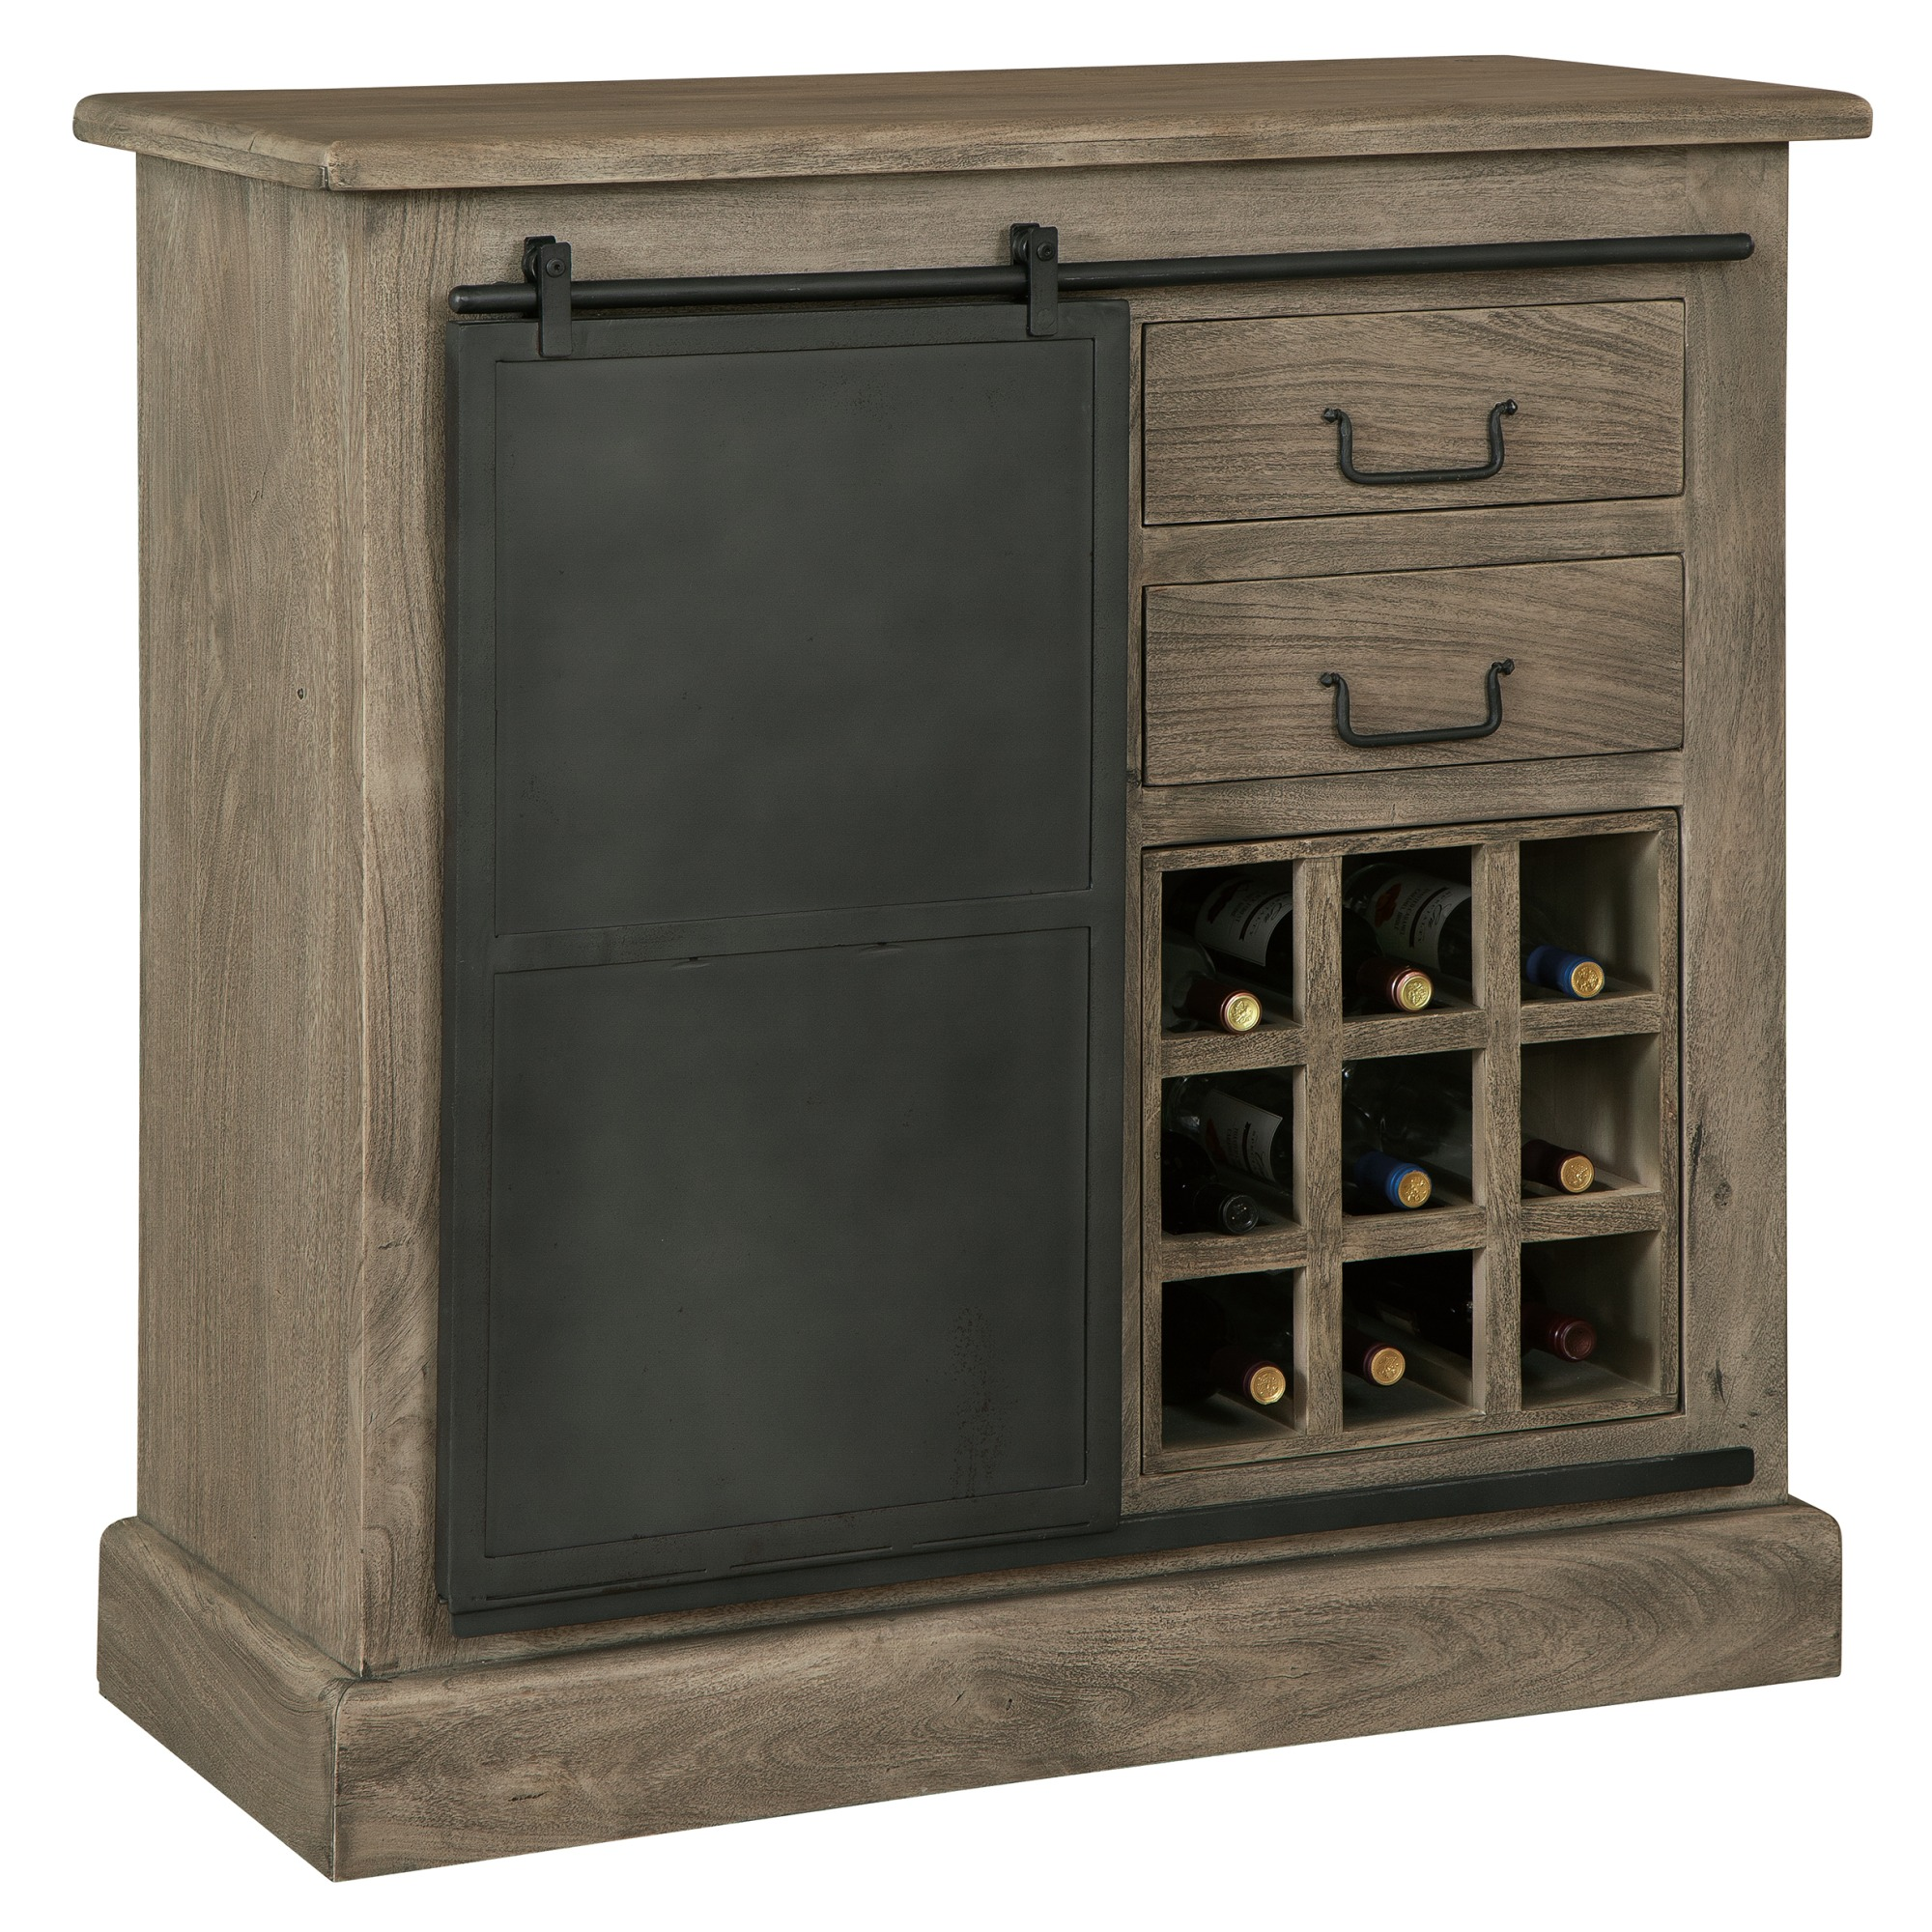 Image for 695-214 Shooter Wine & Bar Console from Howard Miller Official Website